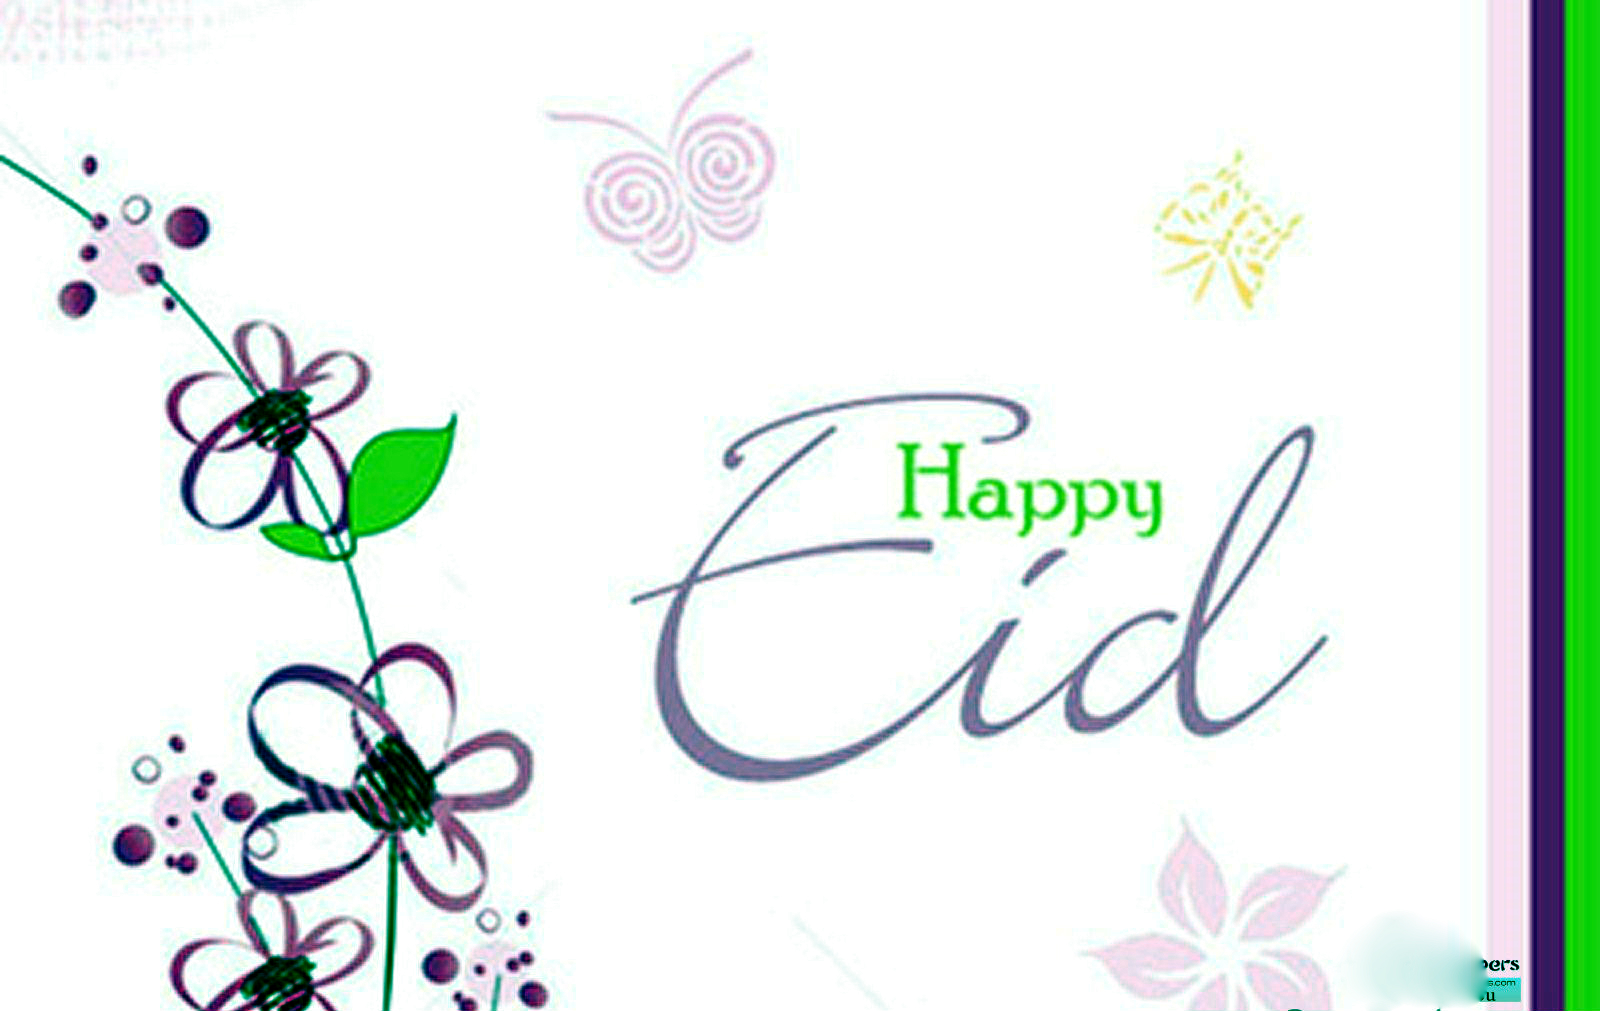 Eid ul fitr greeting cards for desktop hd wallpapers eid ul fitr greeting cards for desktop m4hsunfo